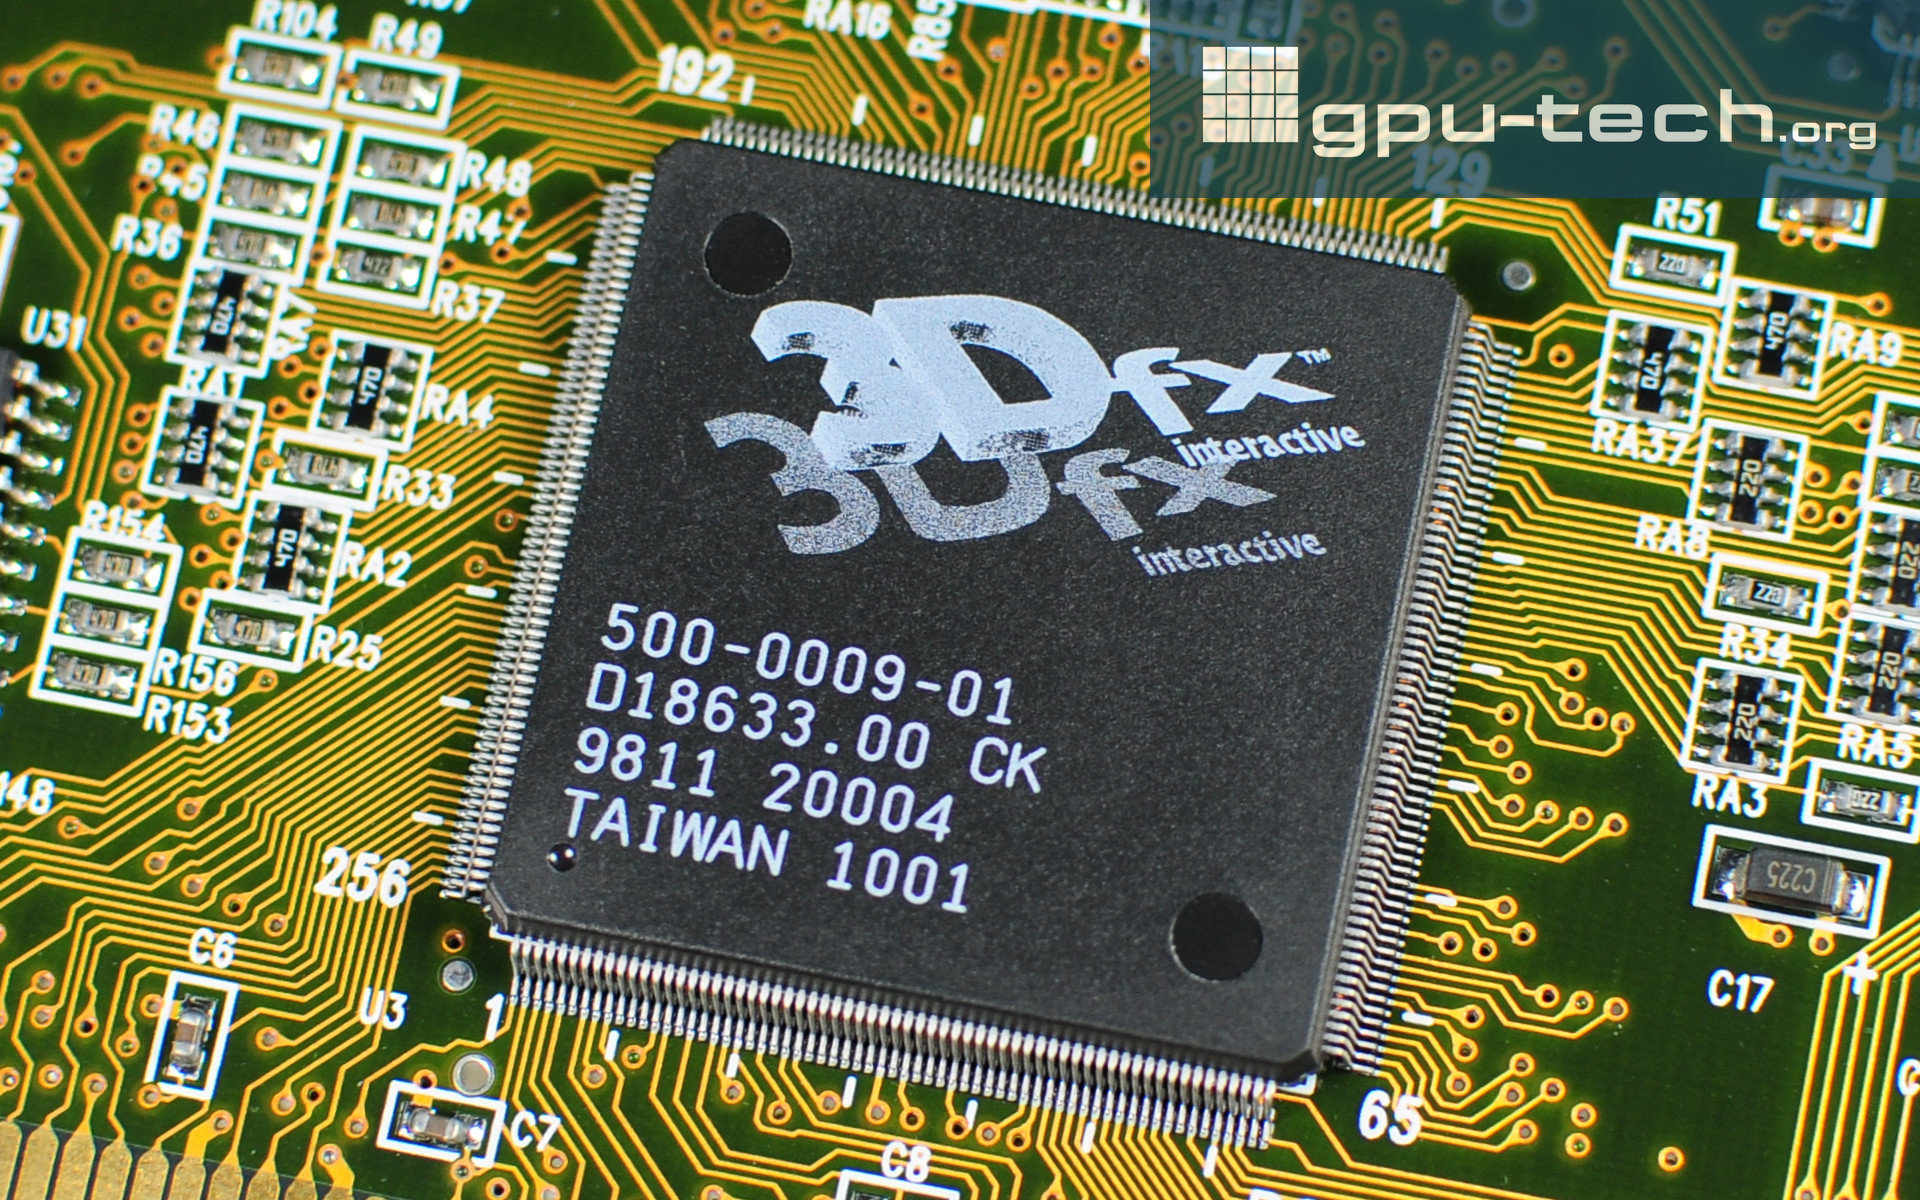 3dfx Voodoo 2: SST-96 Framebuffer Interface